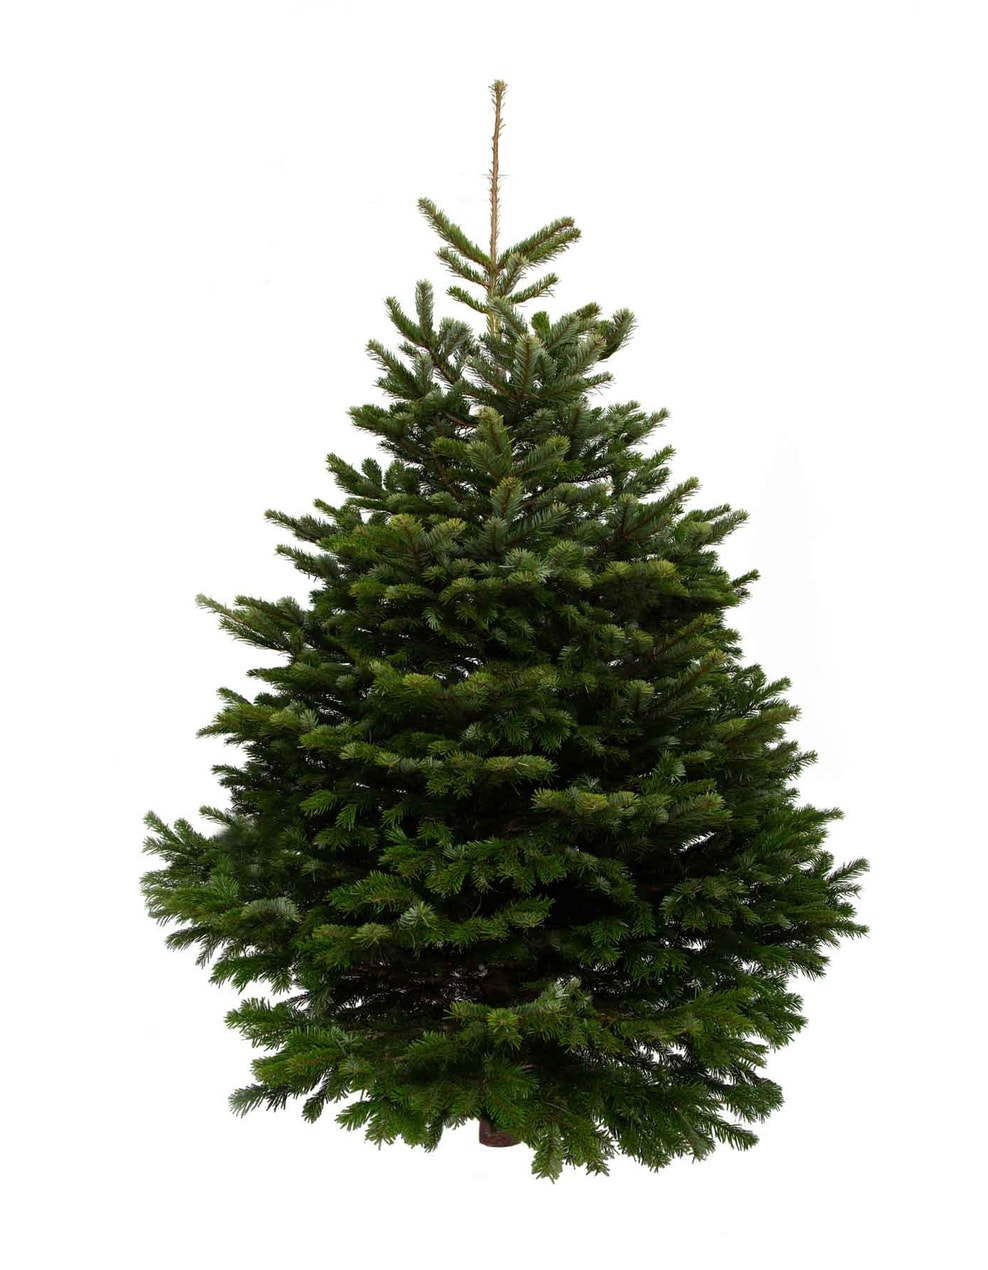 The 5 best ethical Christmas tree sellers in London to buy from The Christmas Forest